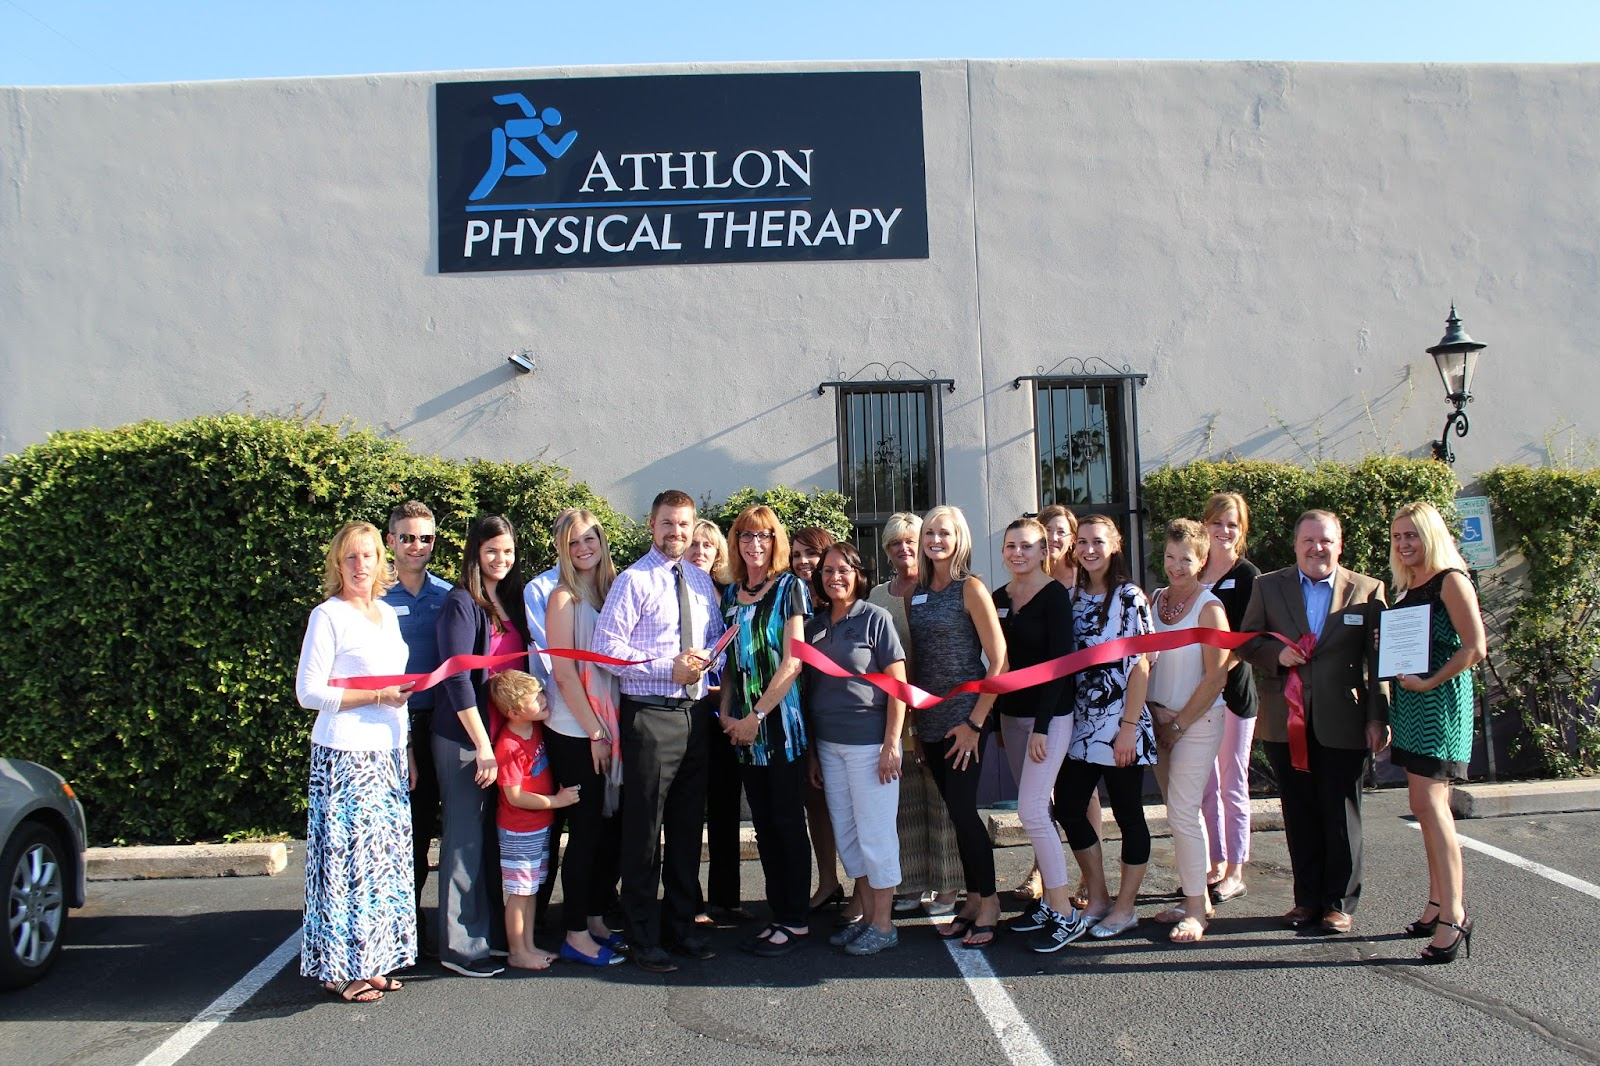 Congratulations Athlon Physical Therapy, located at 2560 E. Fort Lowell Road!